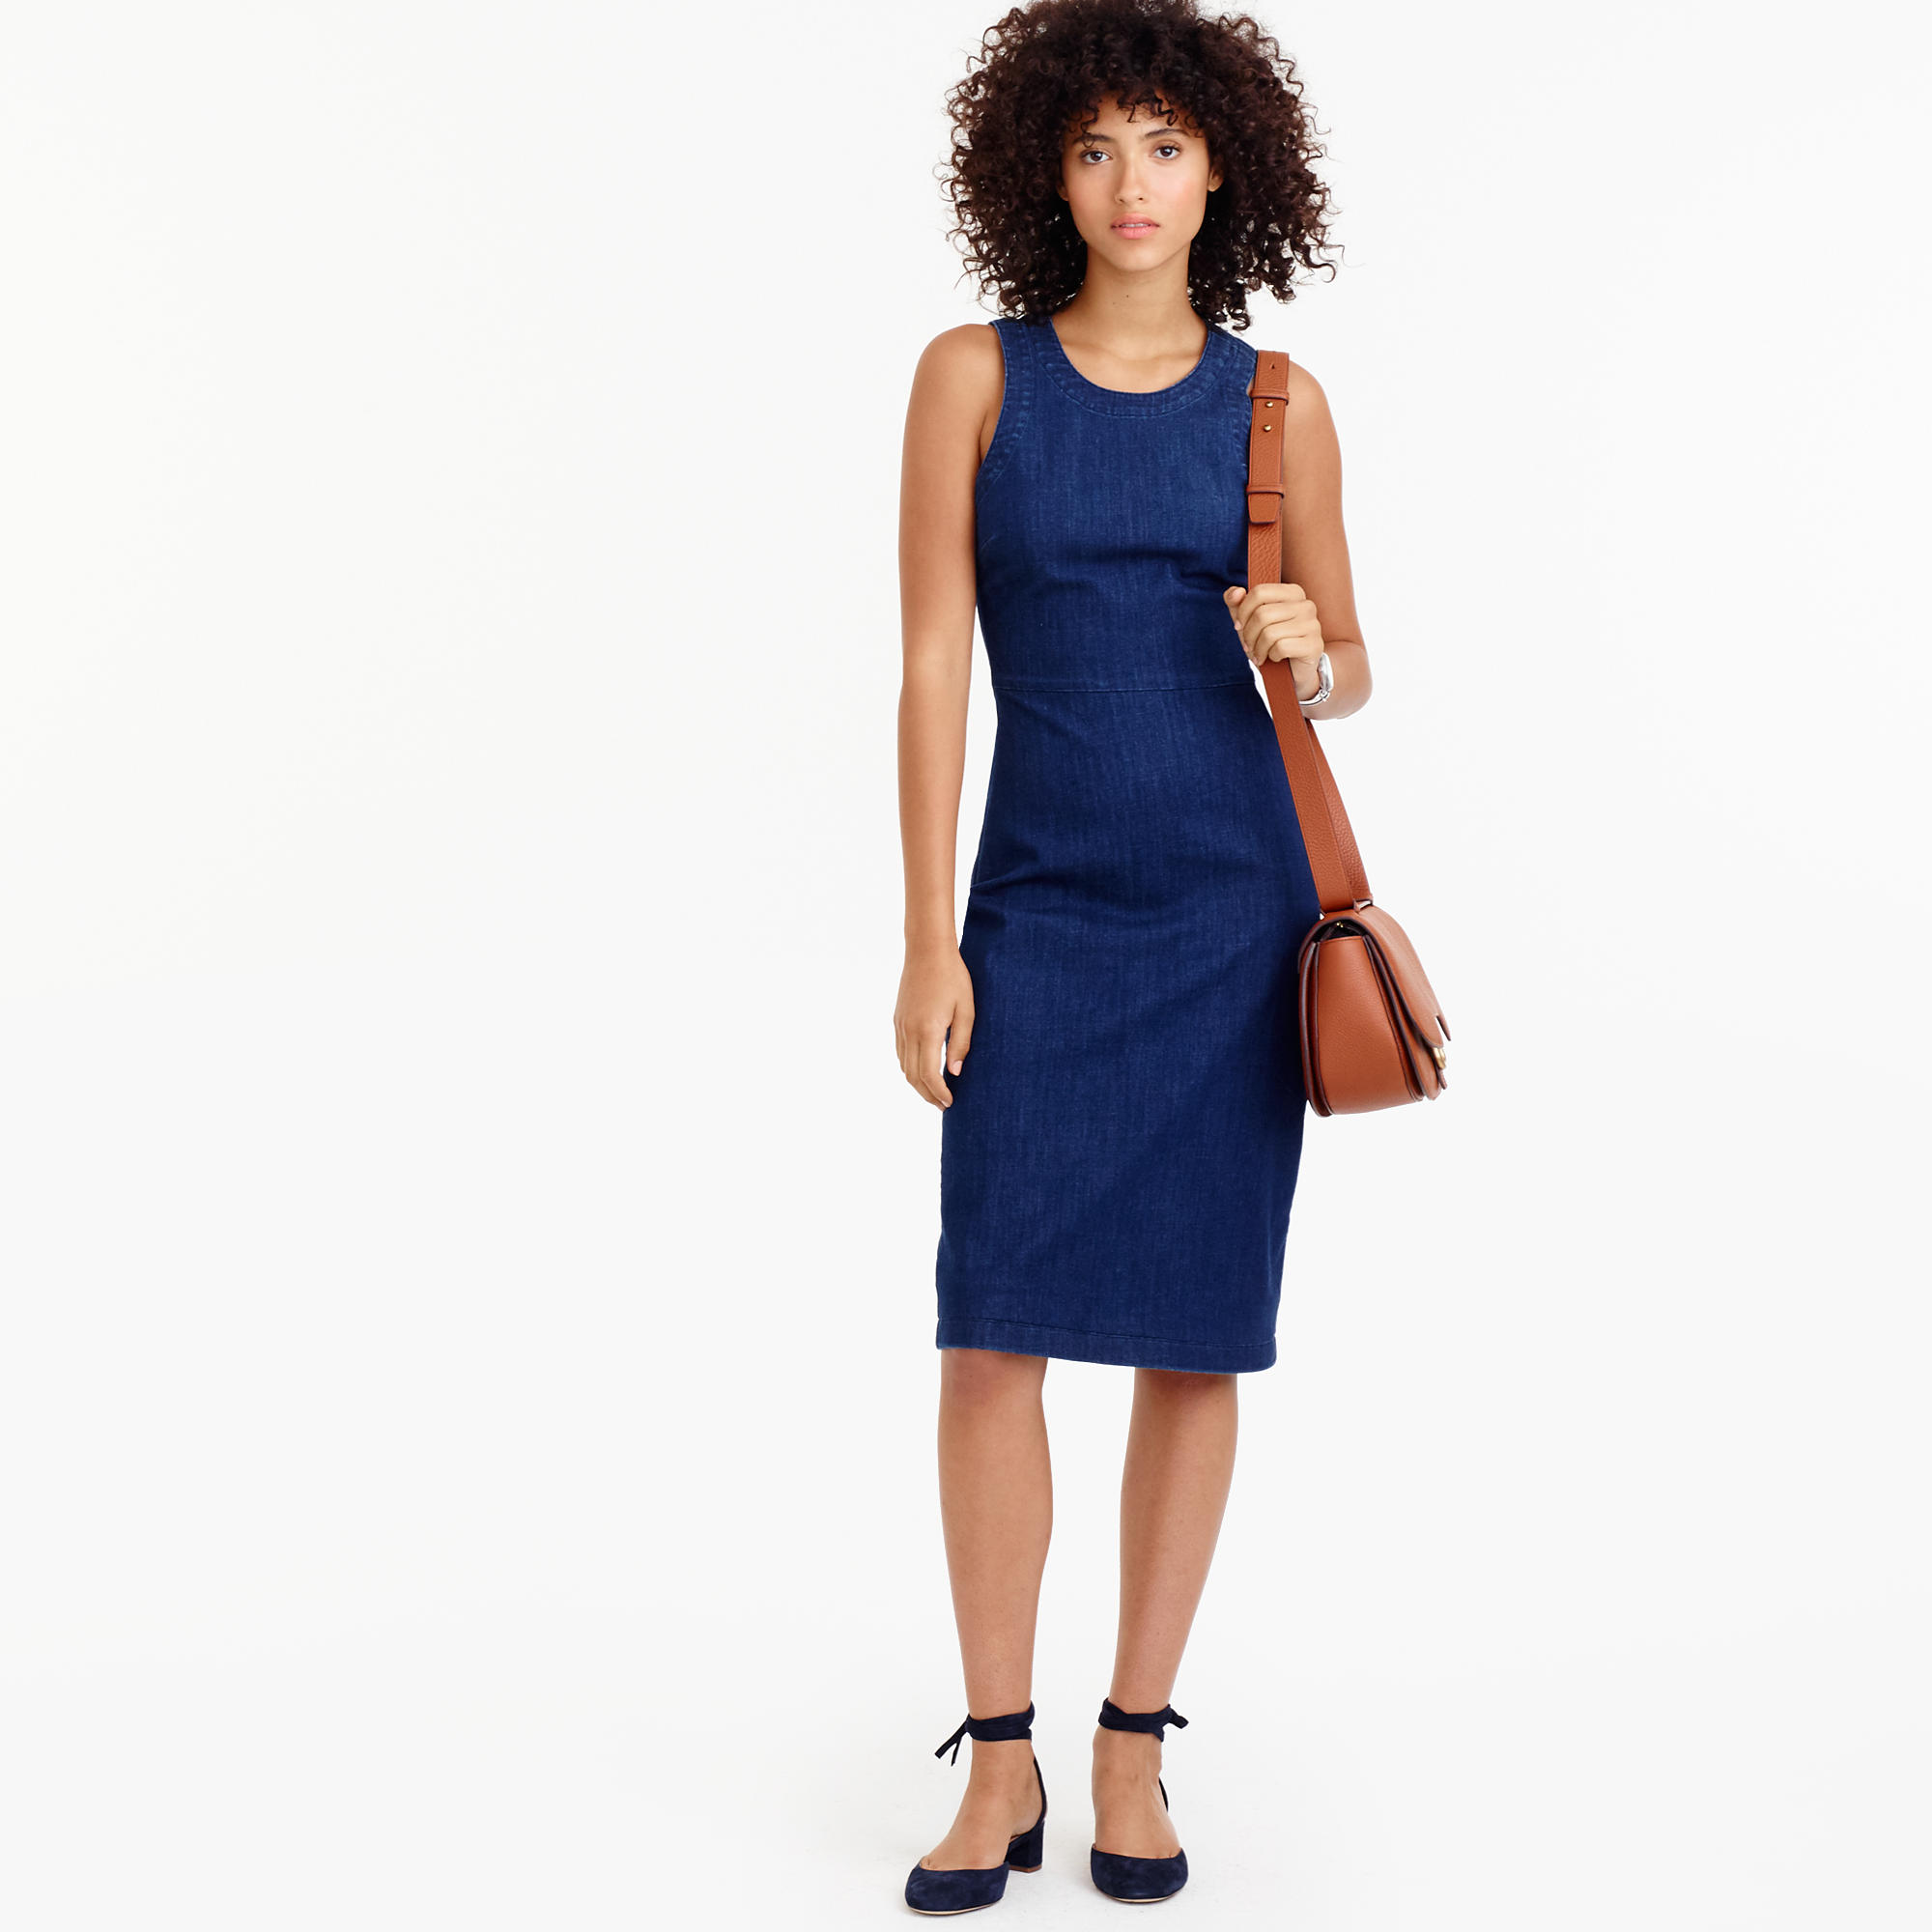 Denim Sheath Dress : Women's Dresses | J.Crew